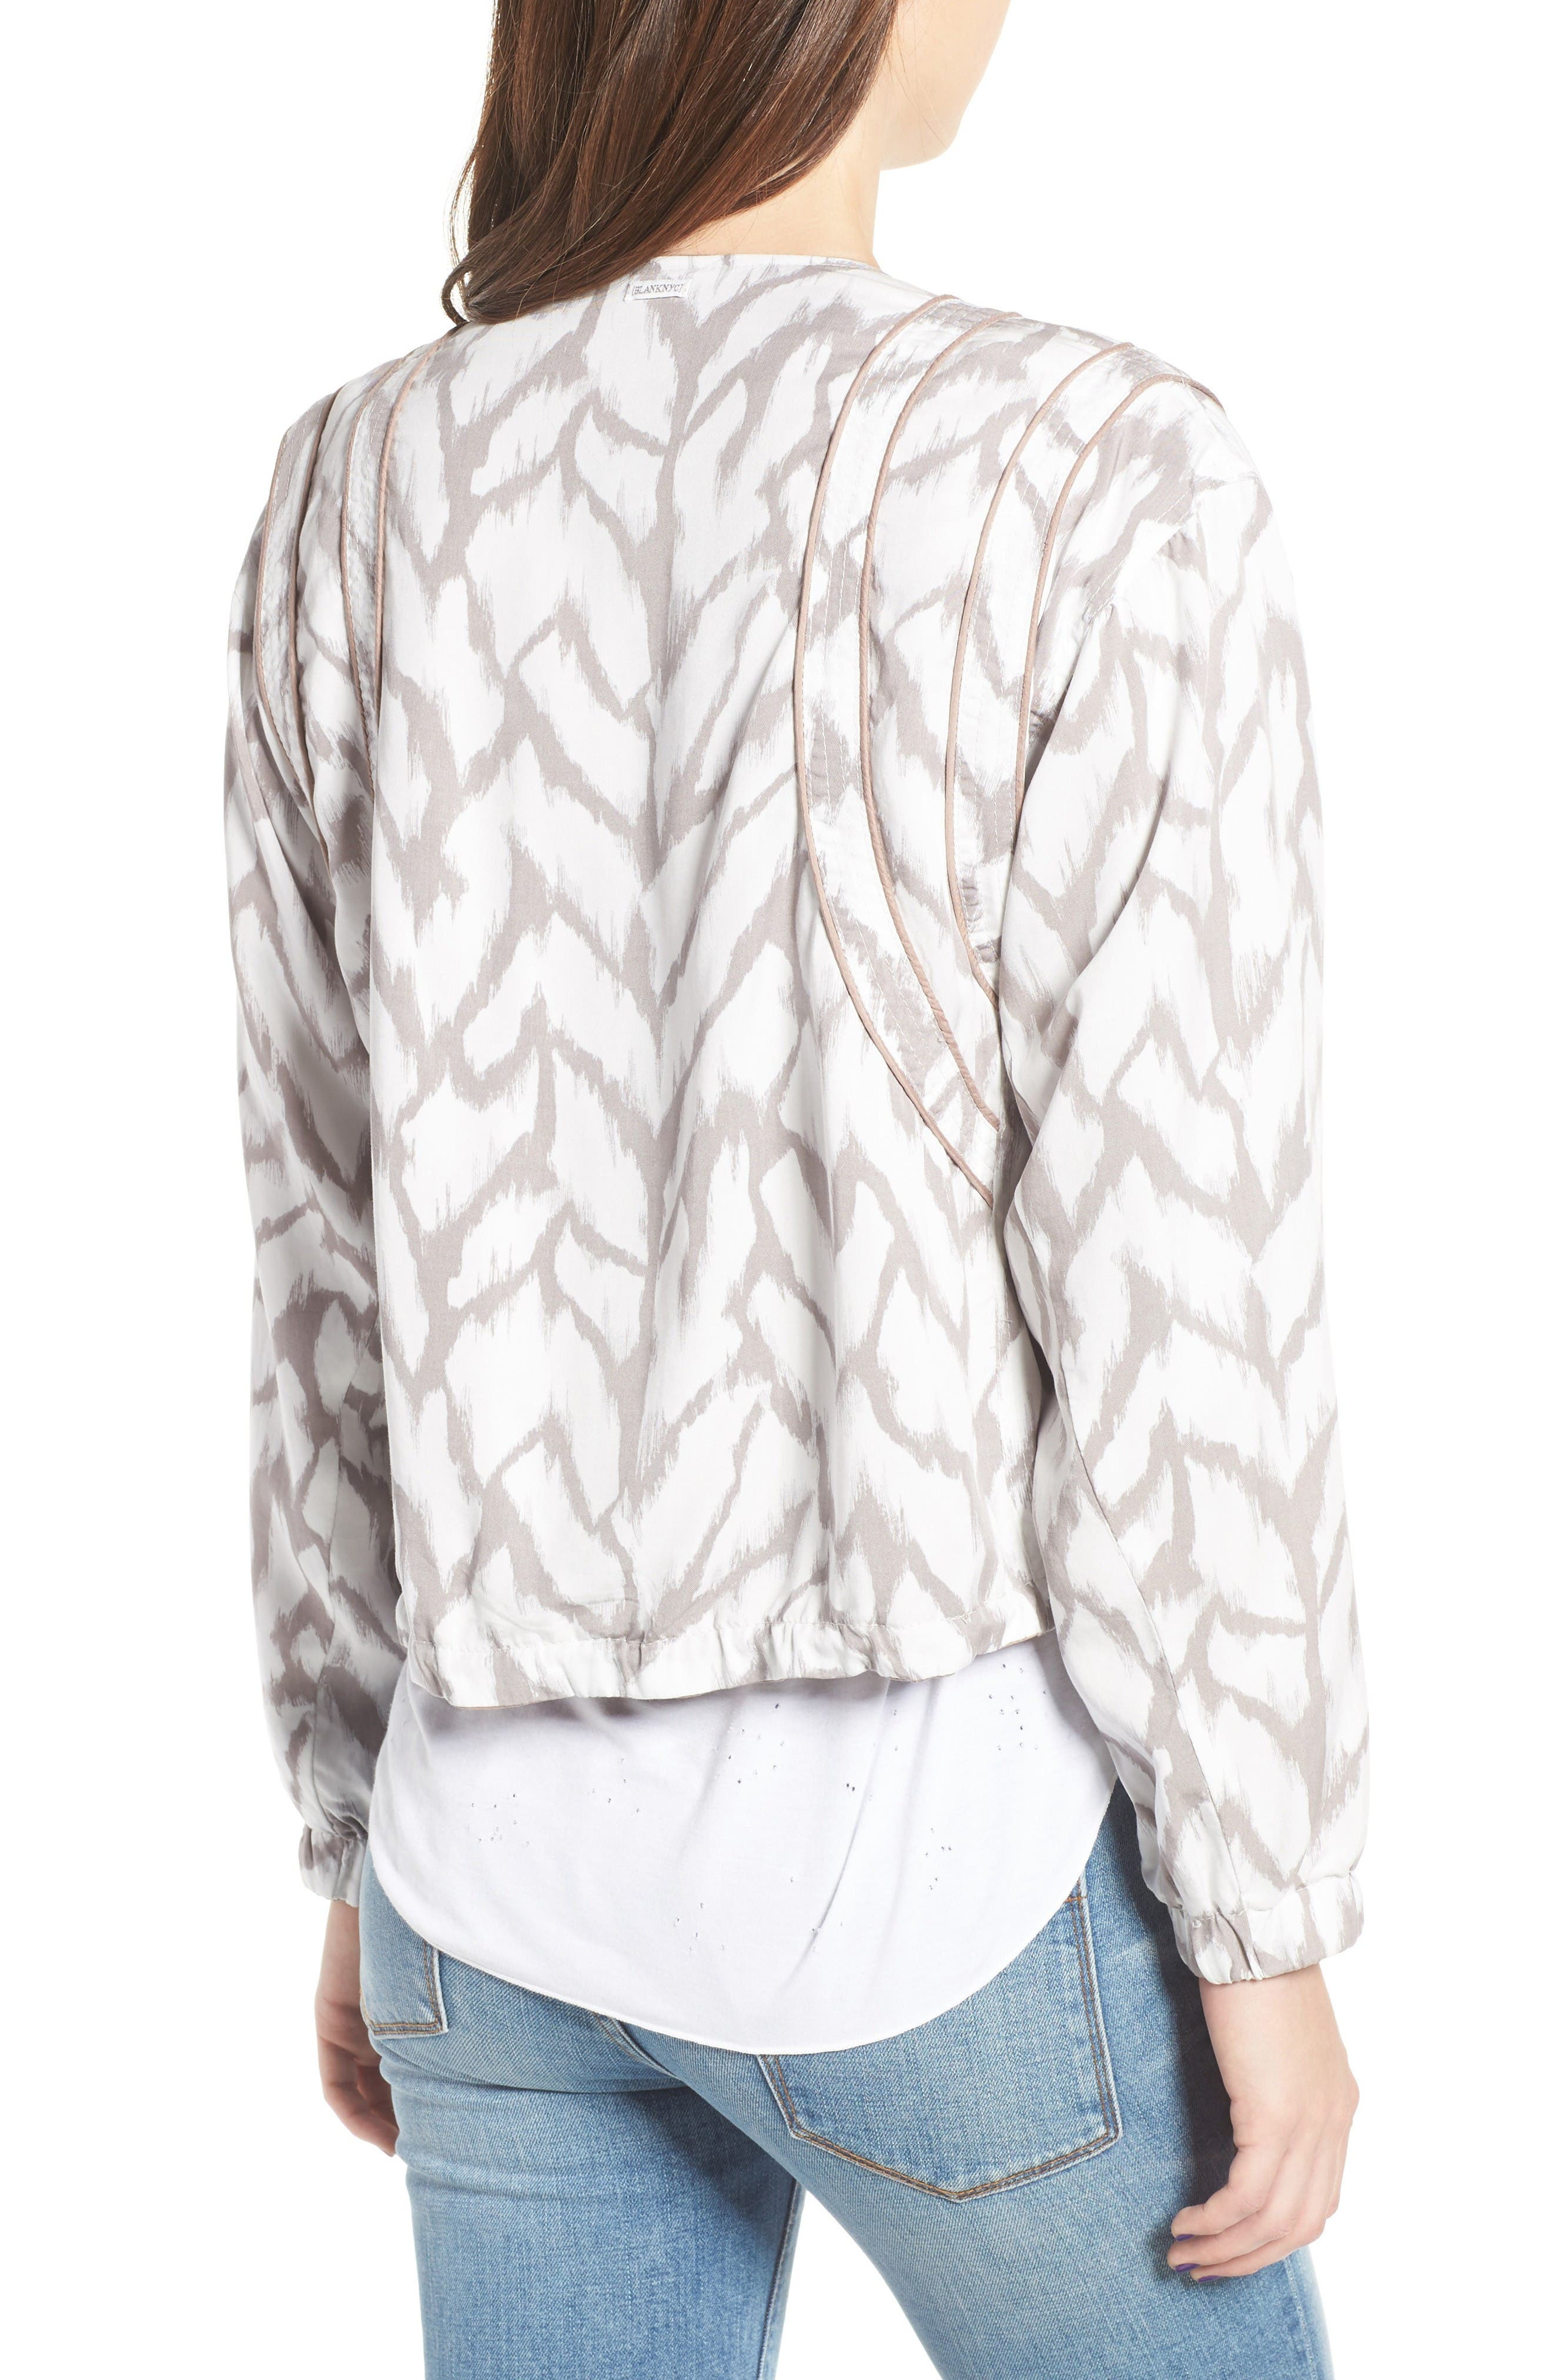 Deep Truth Reversible Jacket,                             Alternate thumbnail 4, color,                             Deep Truth Taupe/ White Print